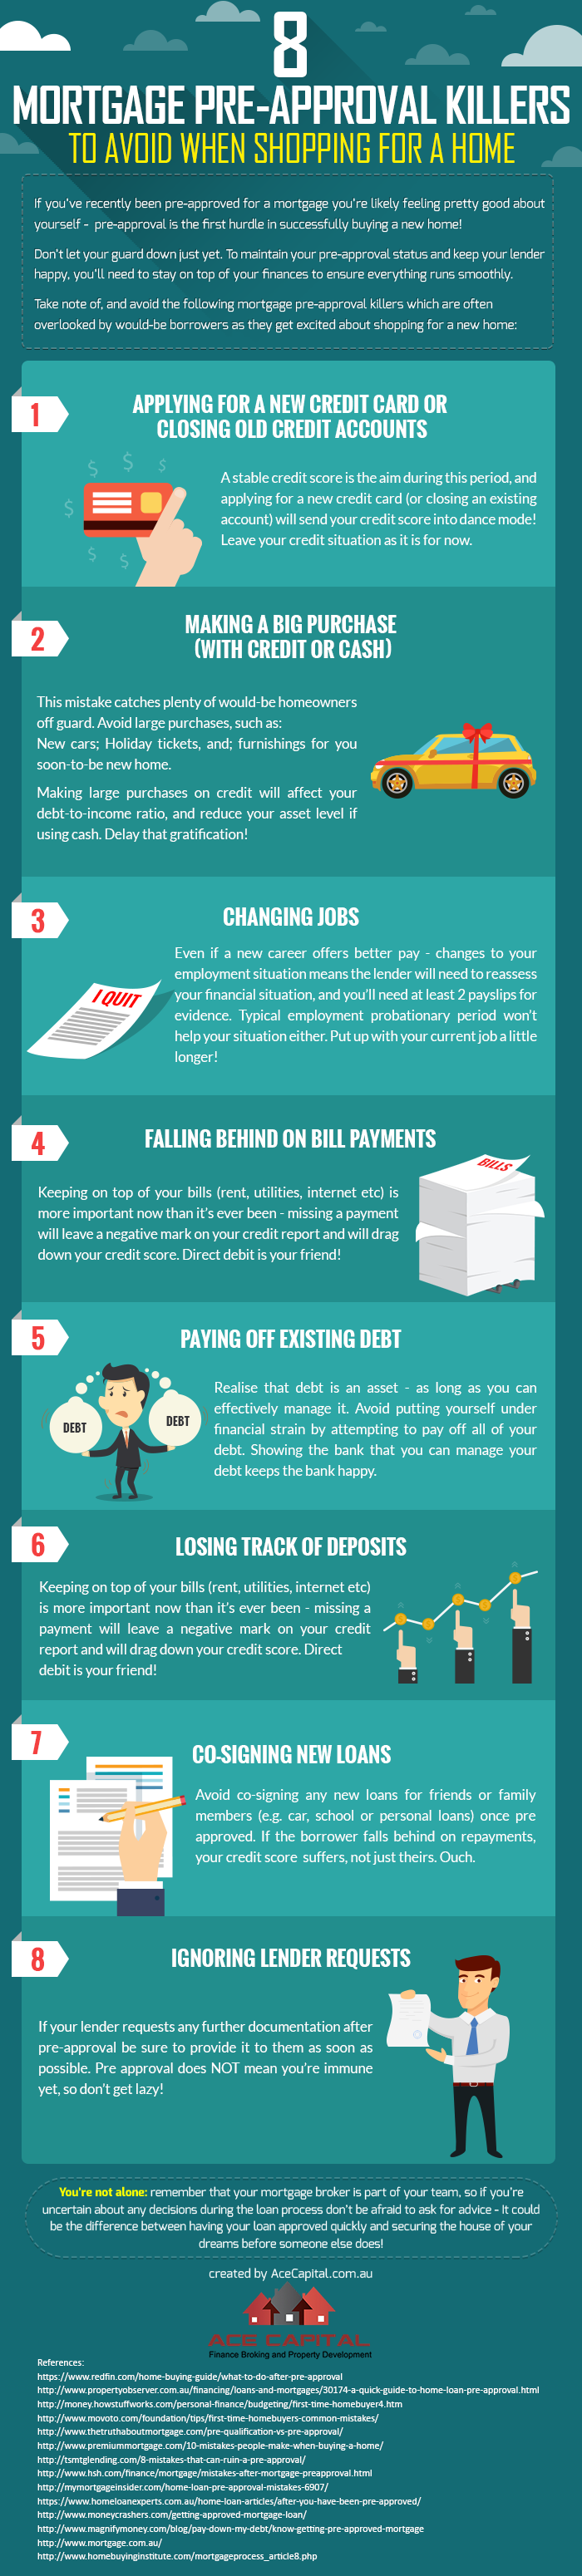 infographic: 8 pre-approval killers